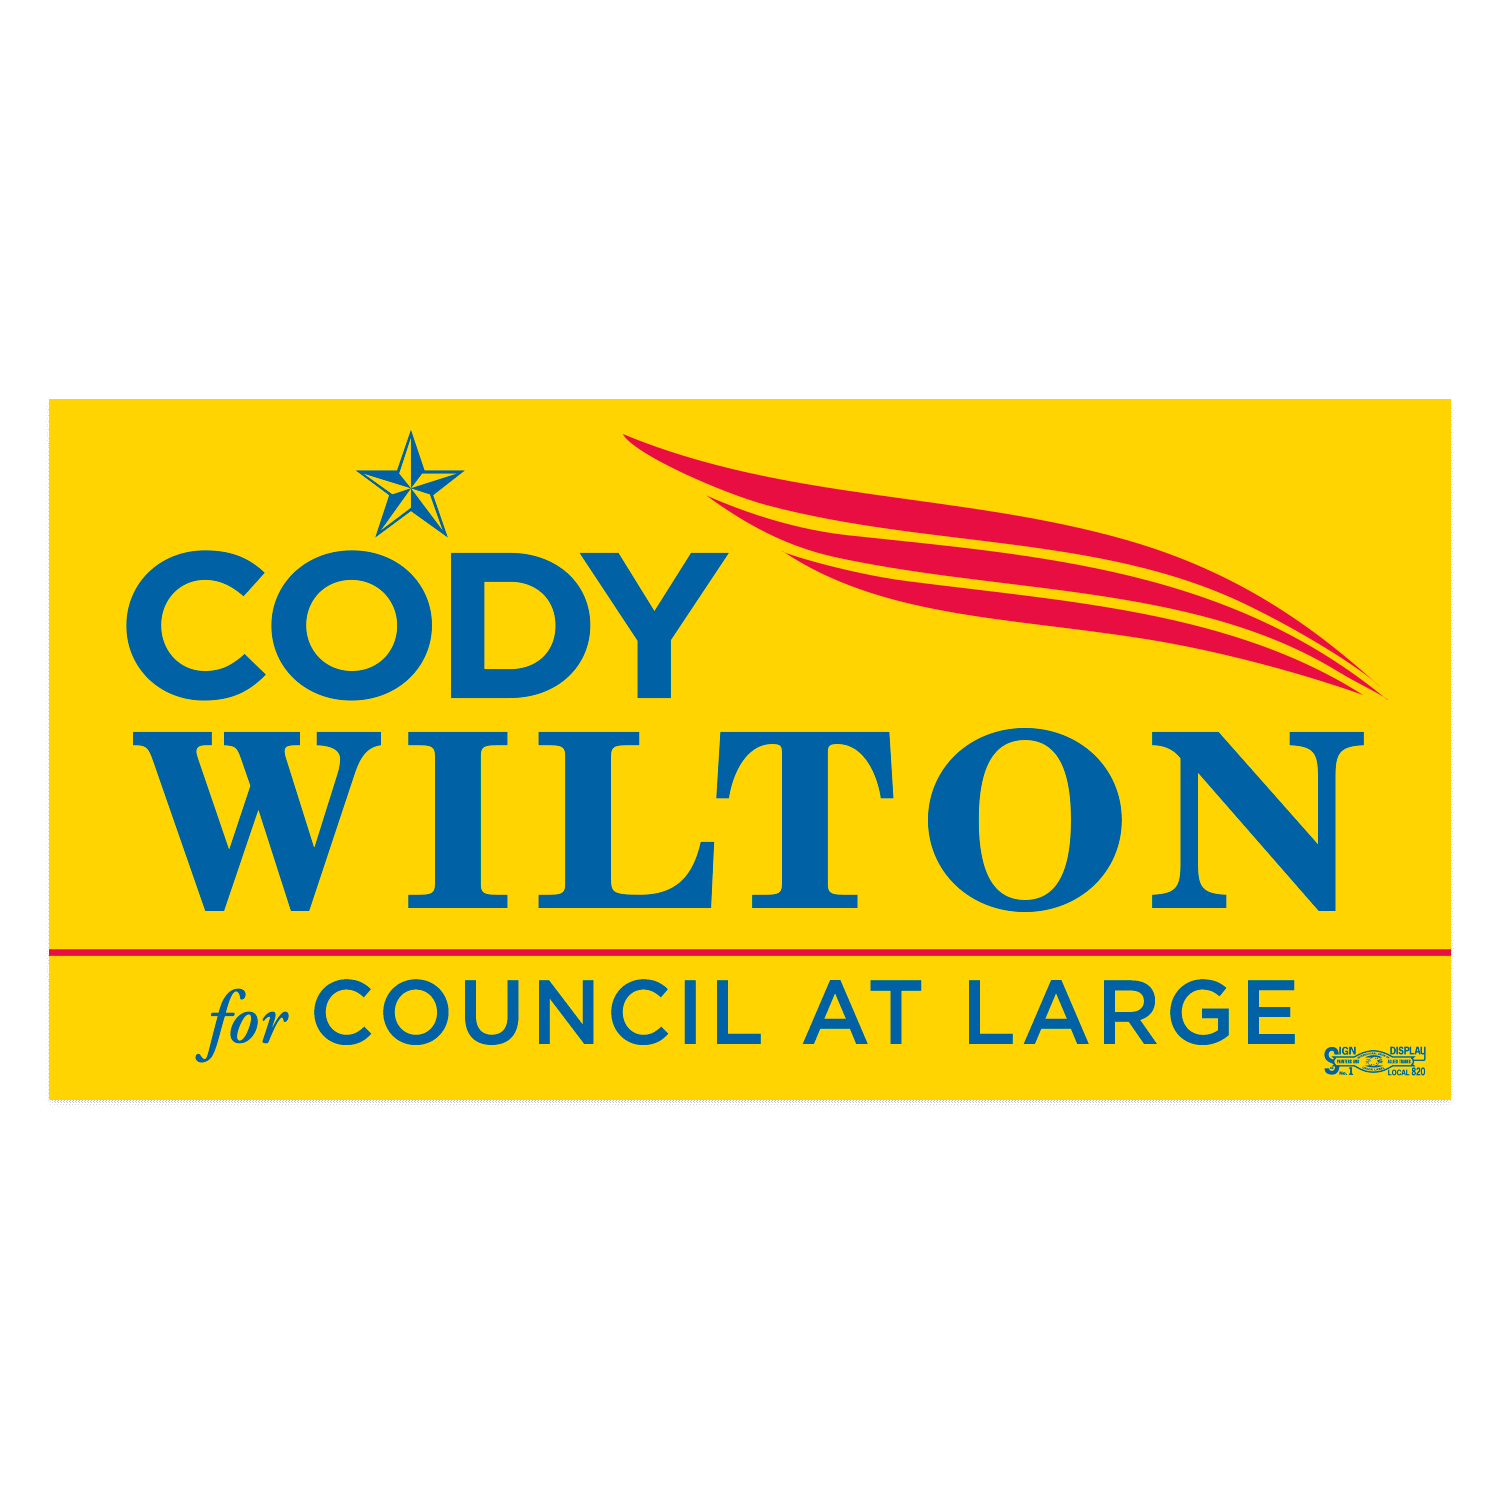 https://www.sswprinting.com/images/products_gallery_images/40703_Cody-Wilton_hi-res.png